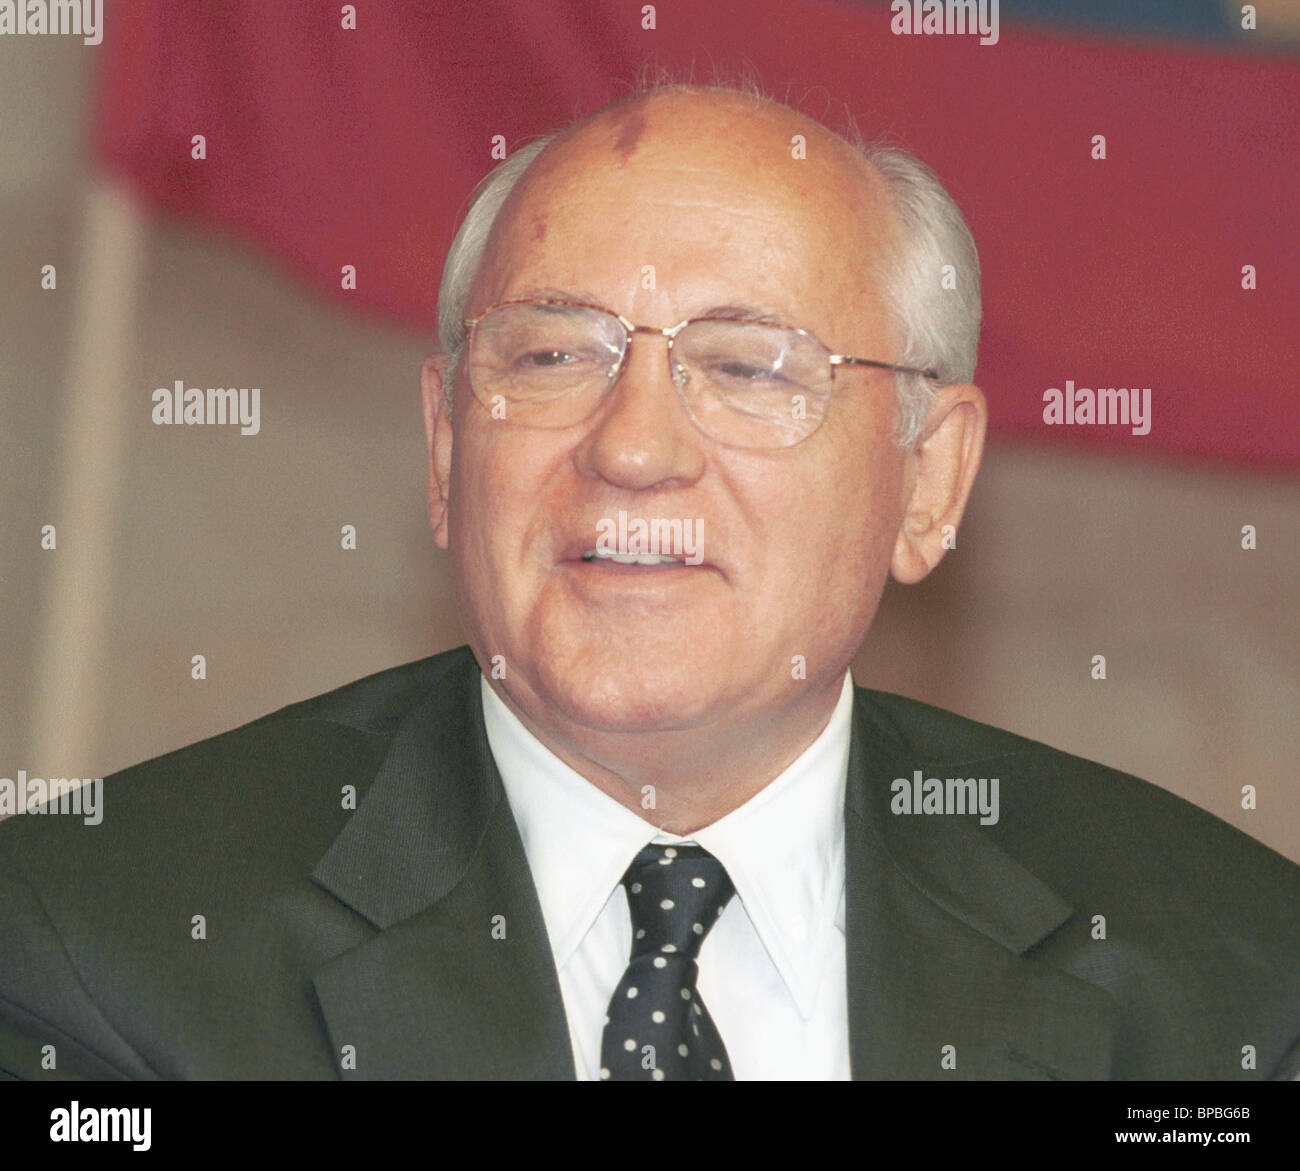 Leader of Russian United Social Democratic Party Mikhail Gorbachev - Stock Image